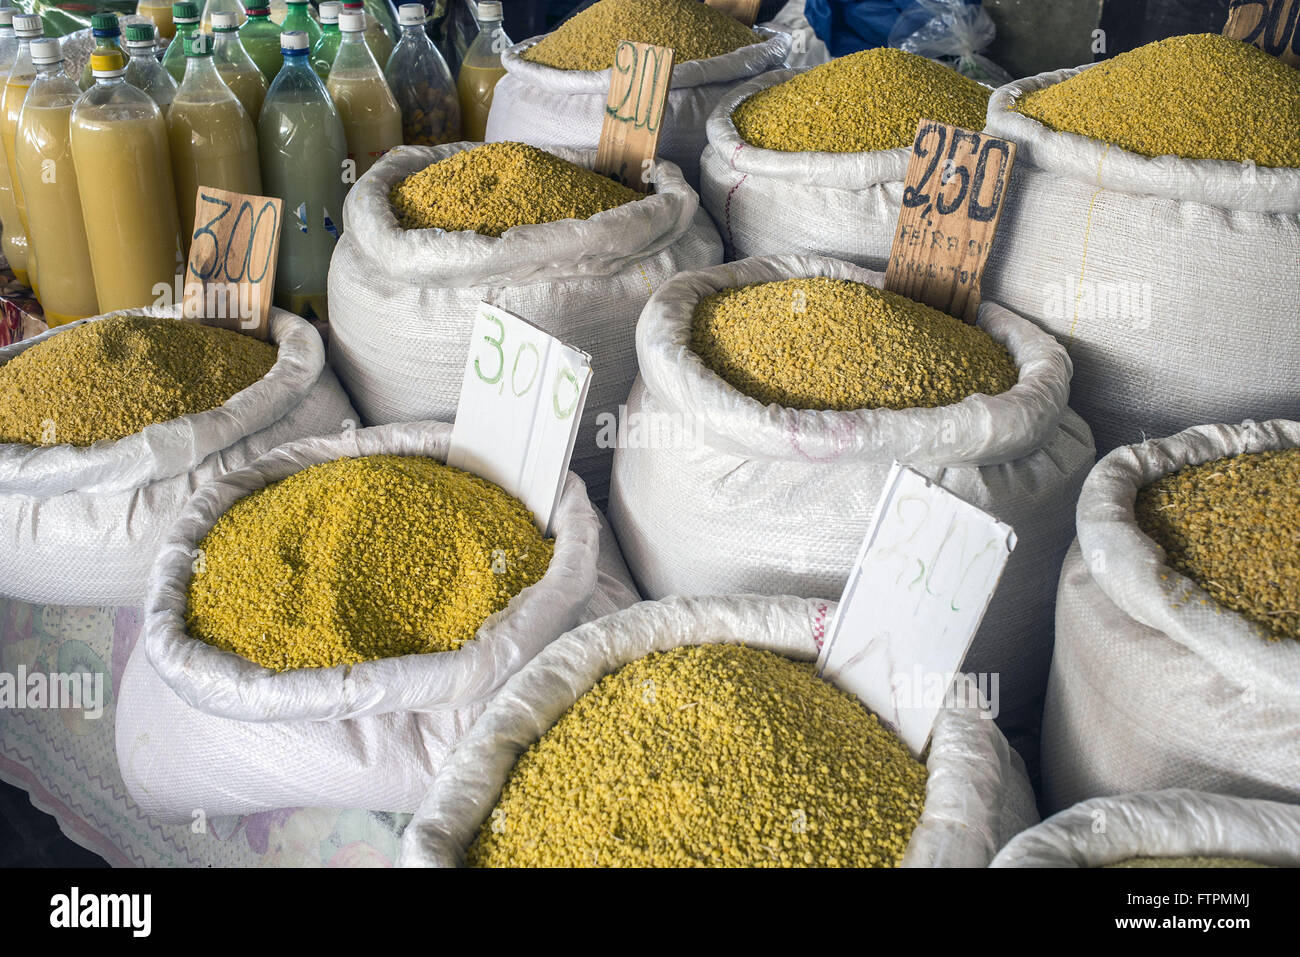 Cassava flour sale in bulk at the Farmer Fair - Market in the city center - Stock Image